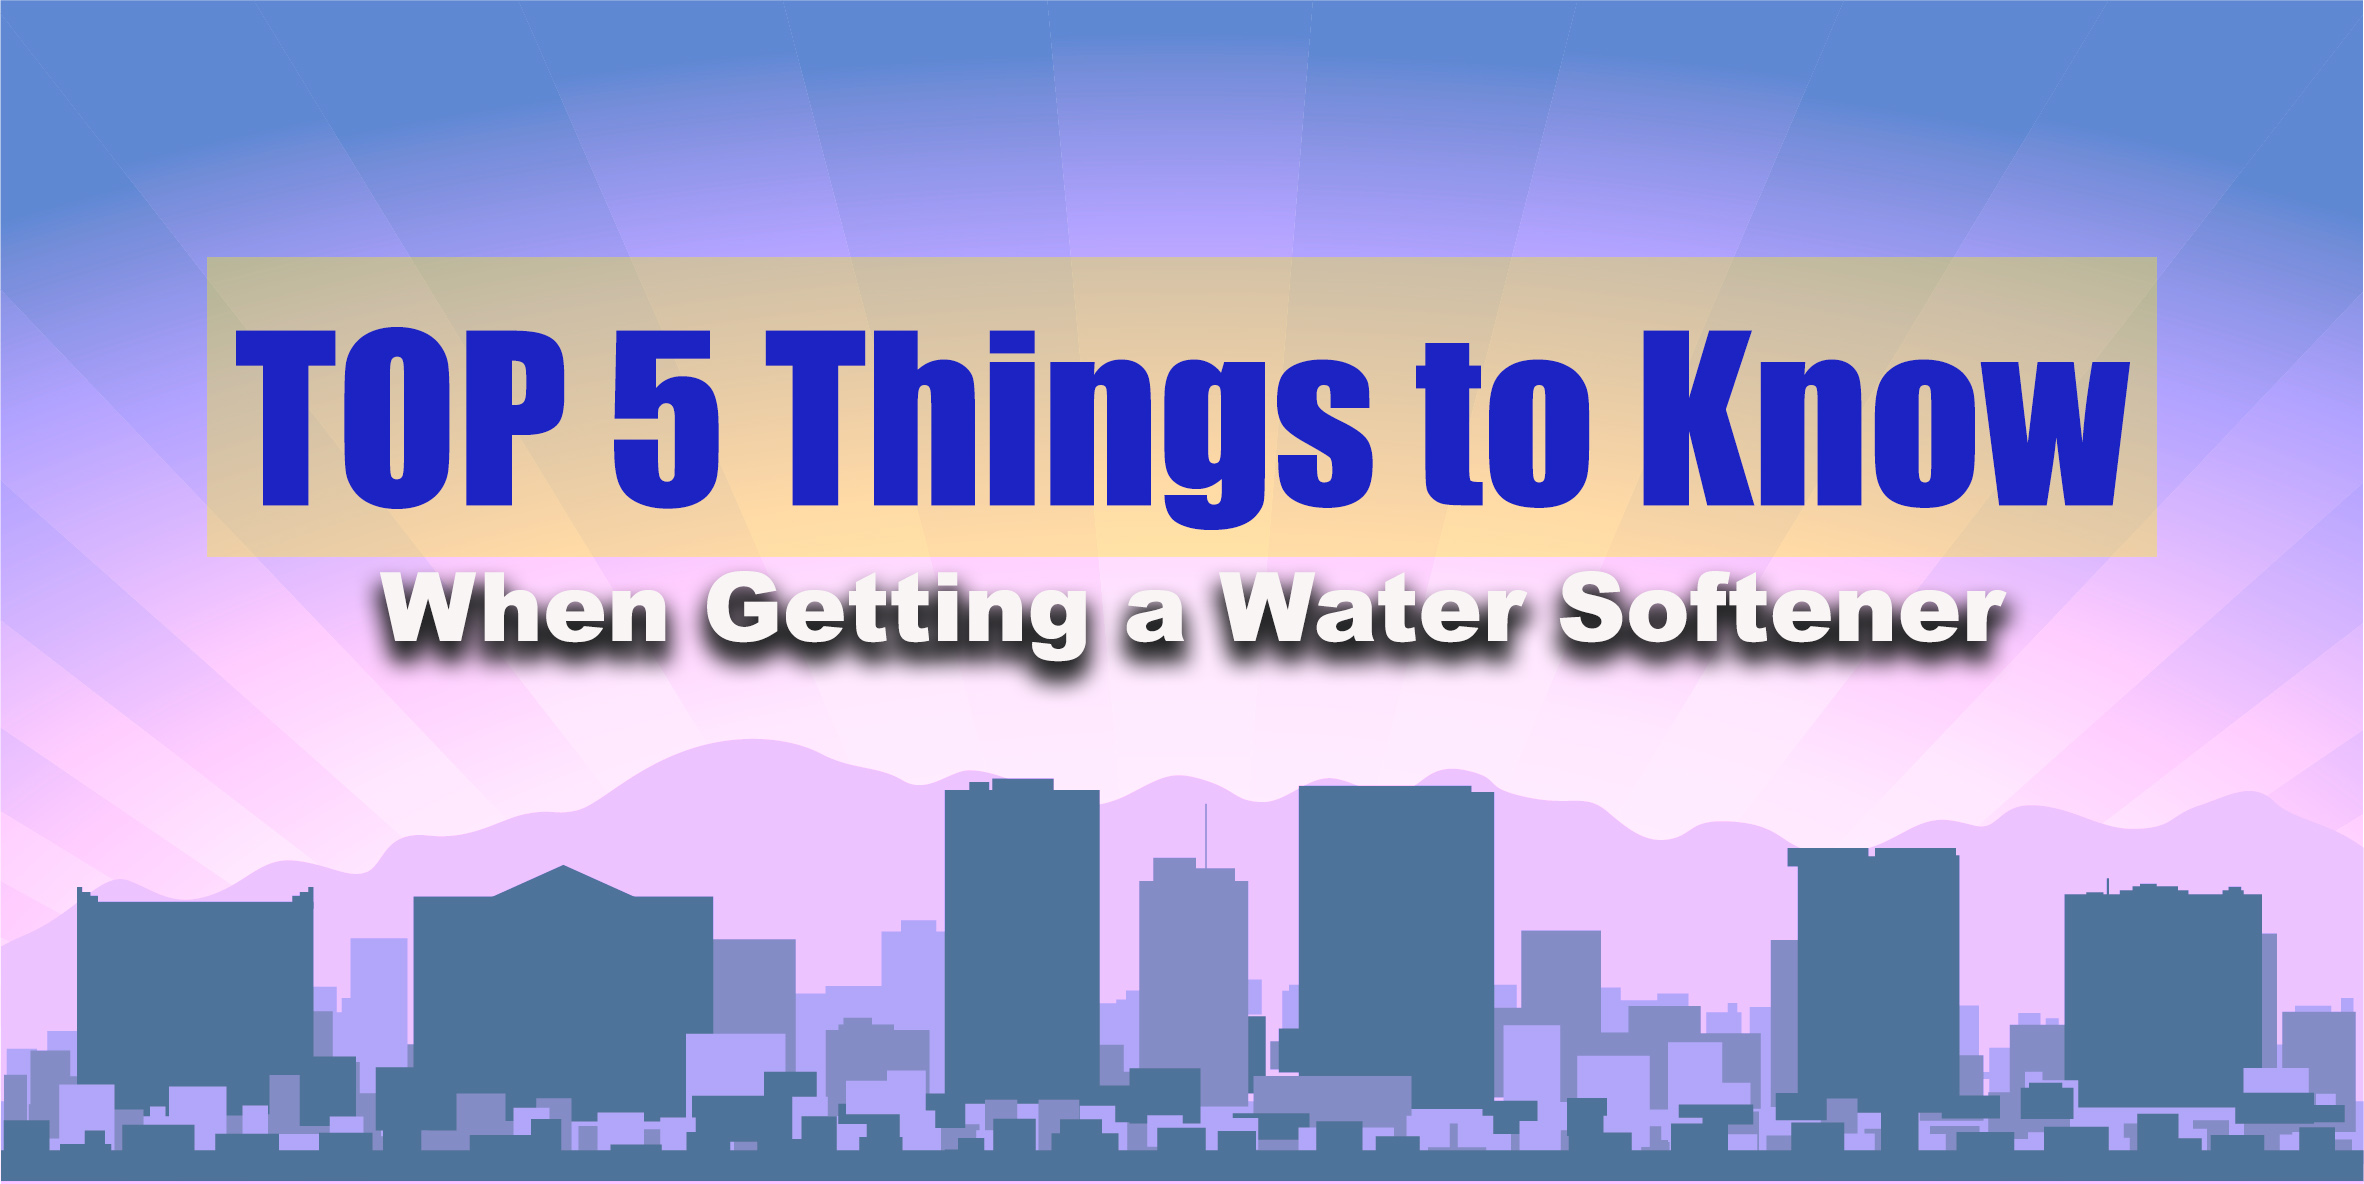 TOP 5 Things to Know | Before Buying a Whole Home Water Softener